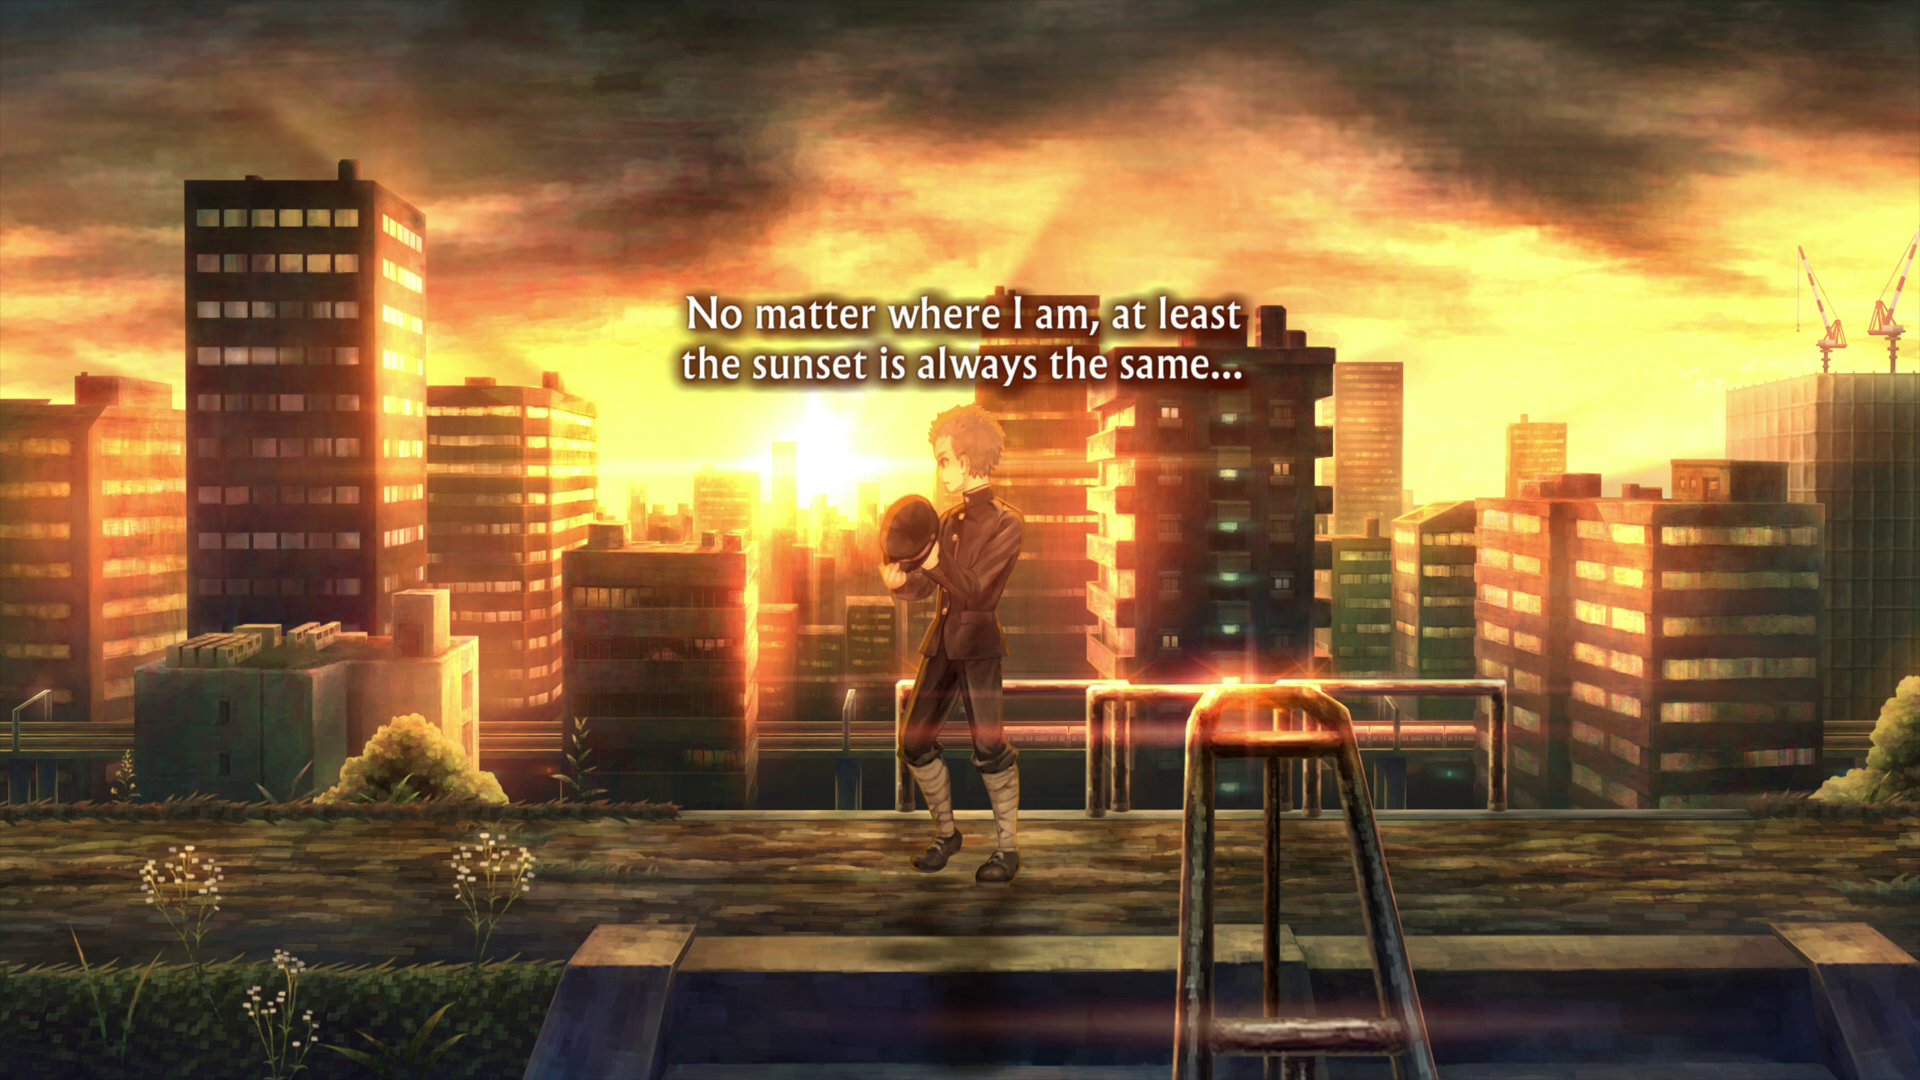 13 Sentinelles Aegis Rim Review Sunset 1